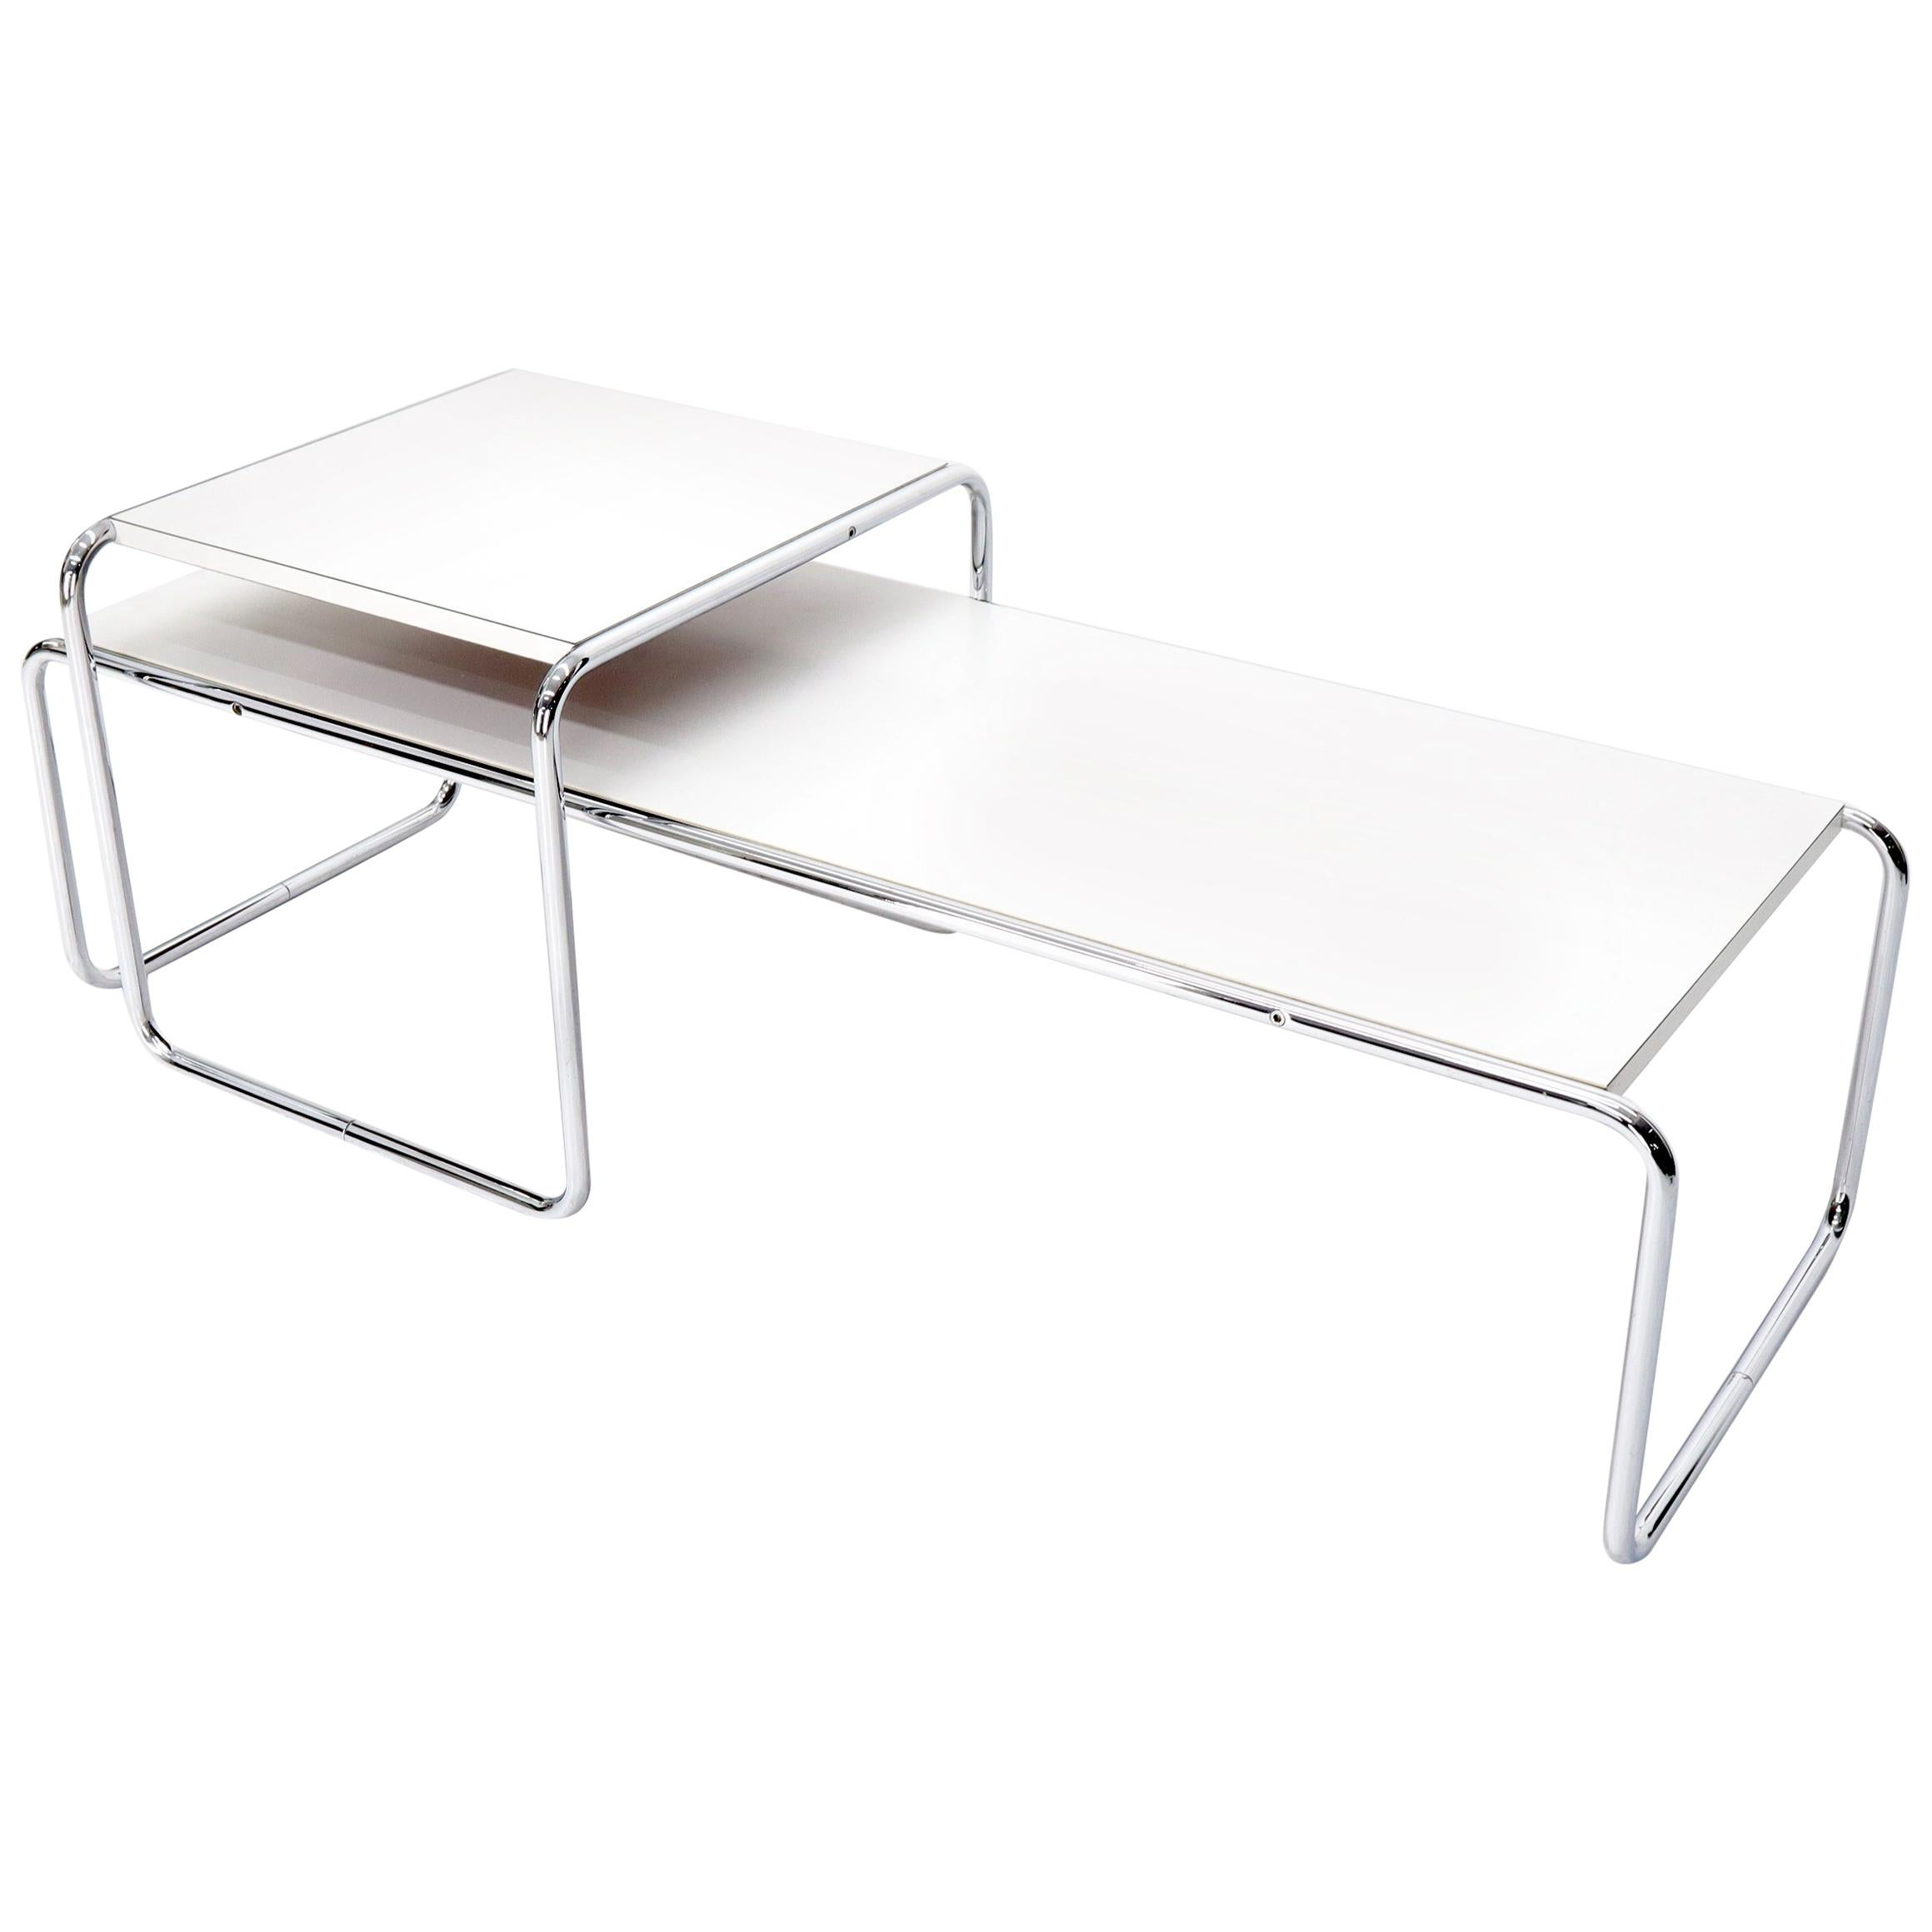 Marcel Breuer Set of Nesting Rectangle Coffee and Side Table Stendig, Finland